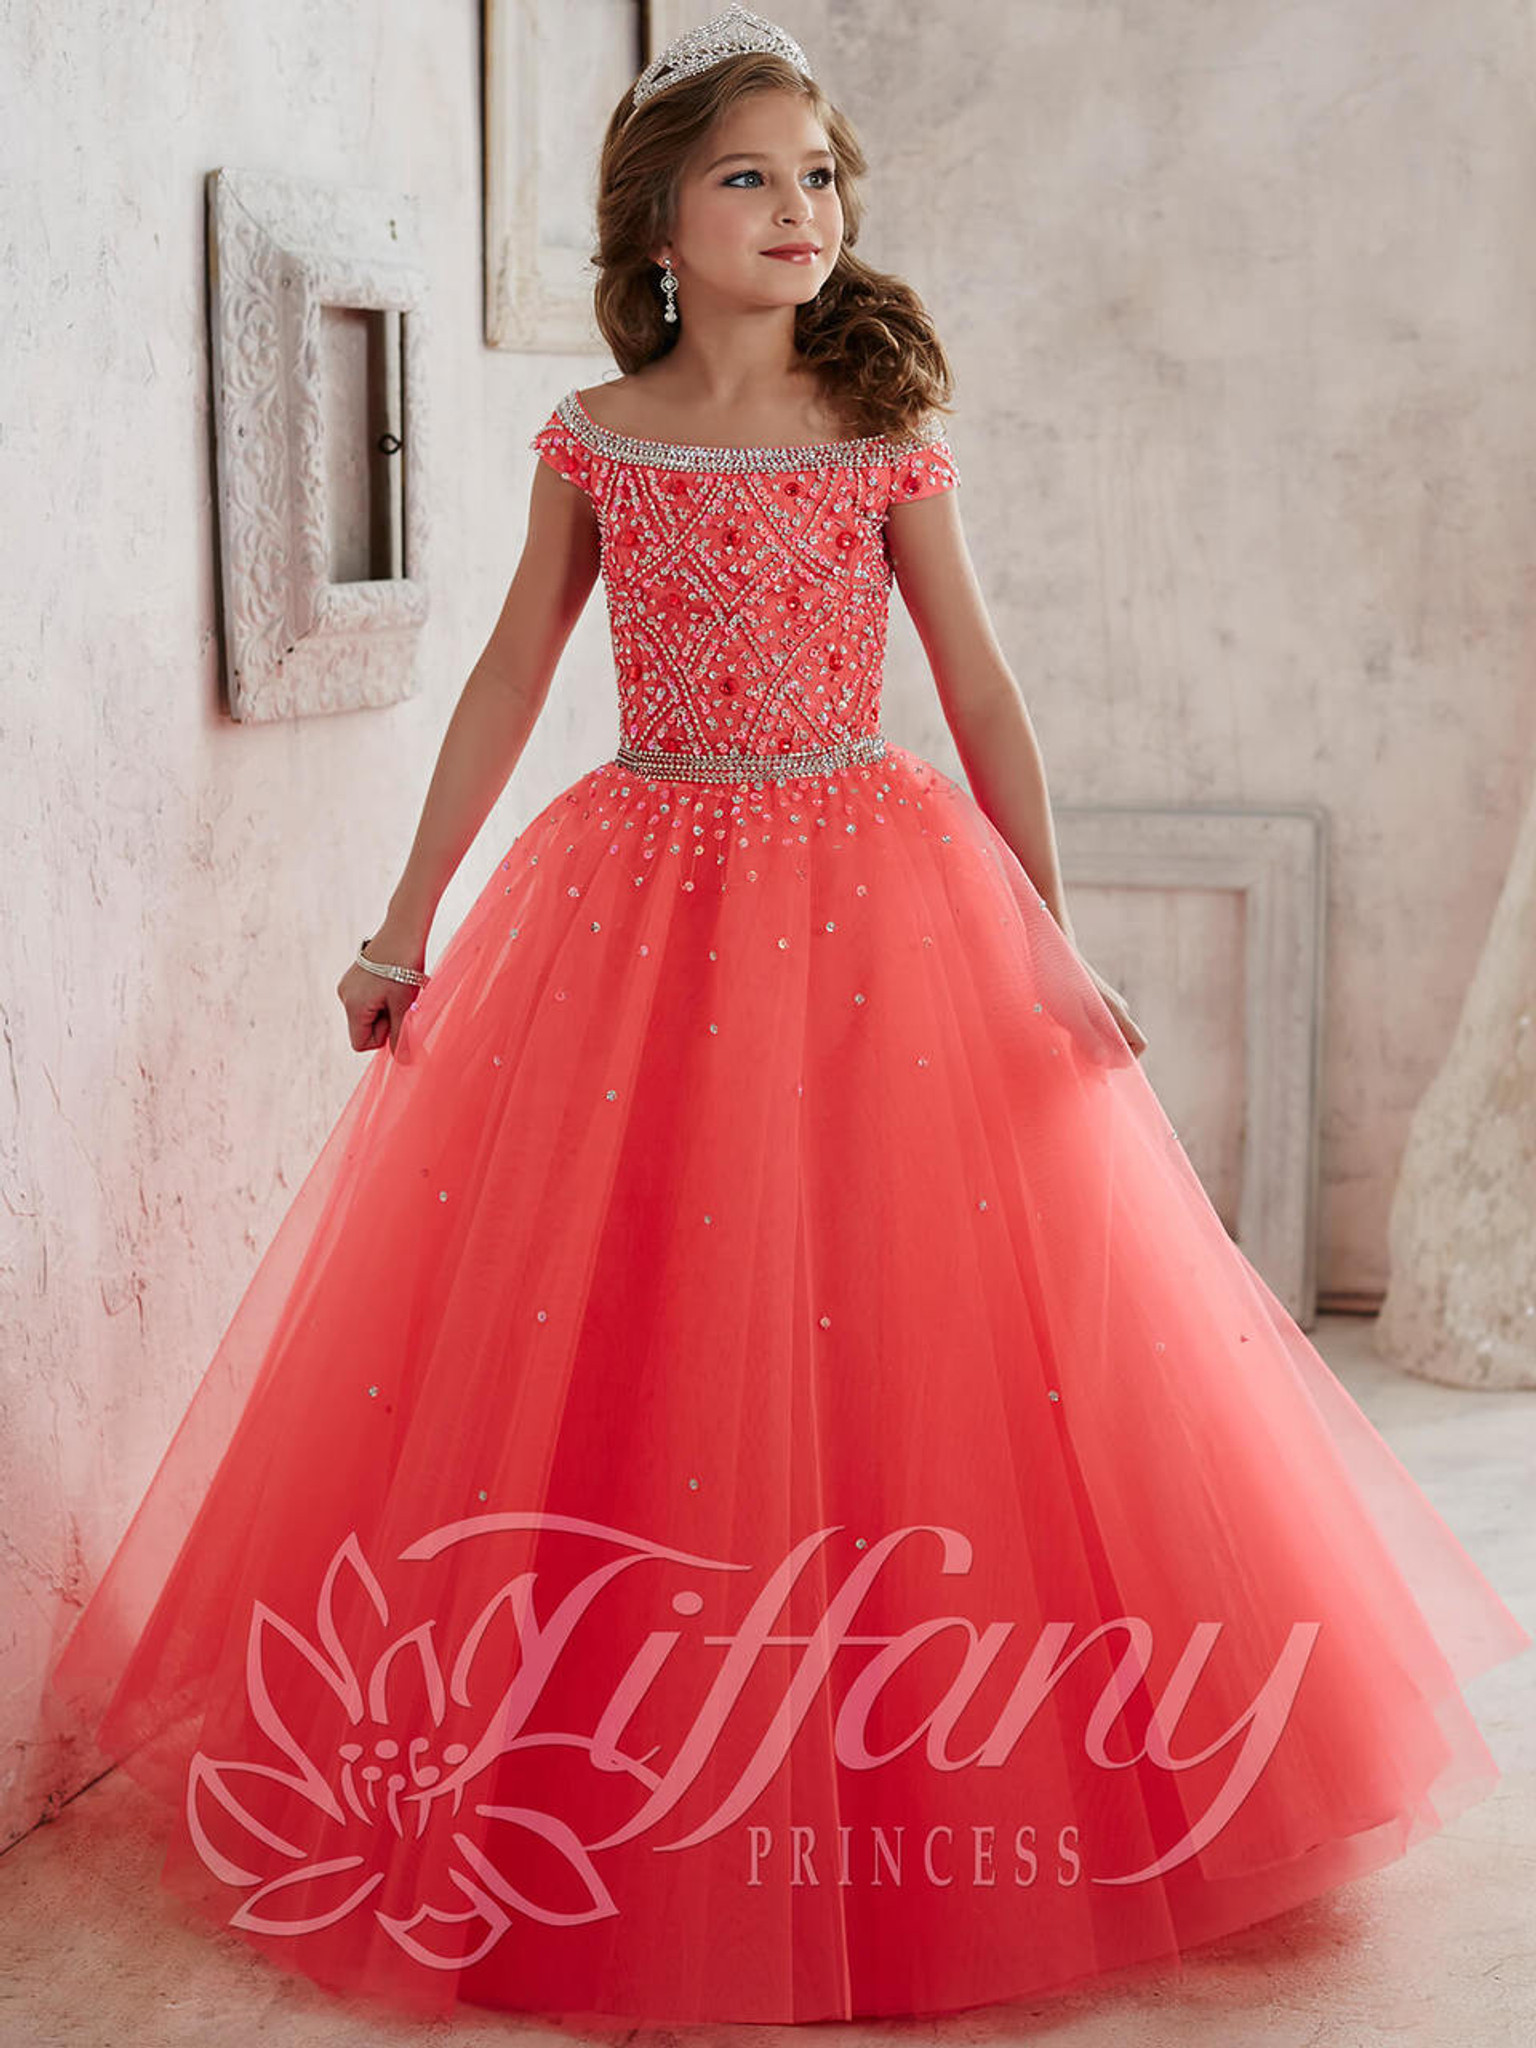 Tulle Pageant Dress by Tiffany Princess 13458